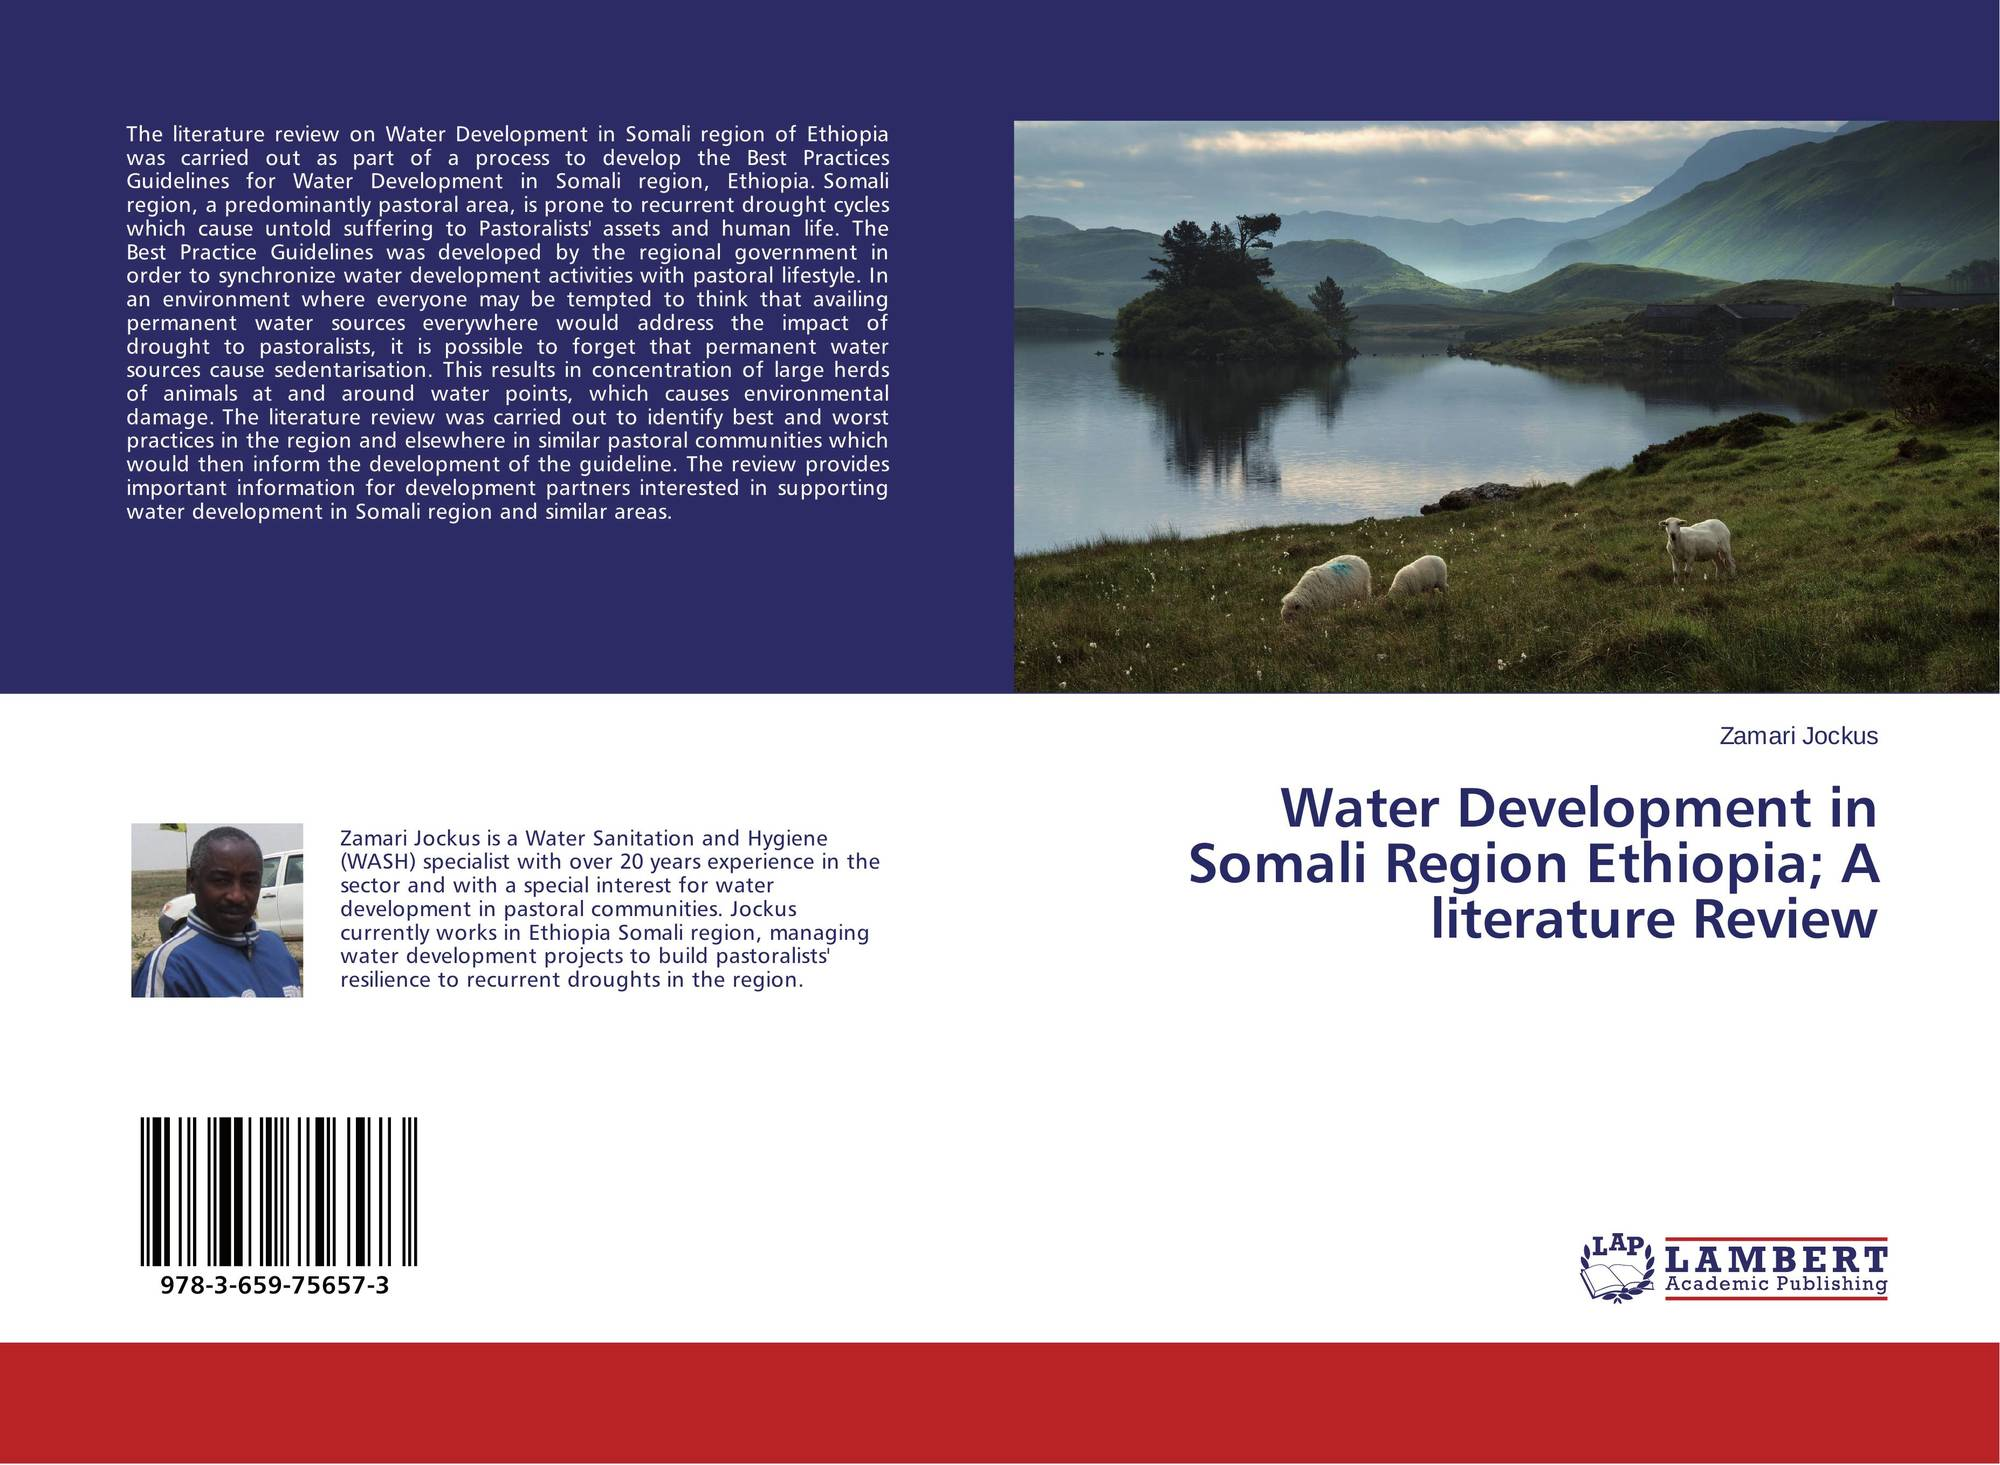 Water Development in Somali Region Ethiopia